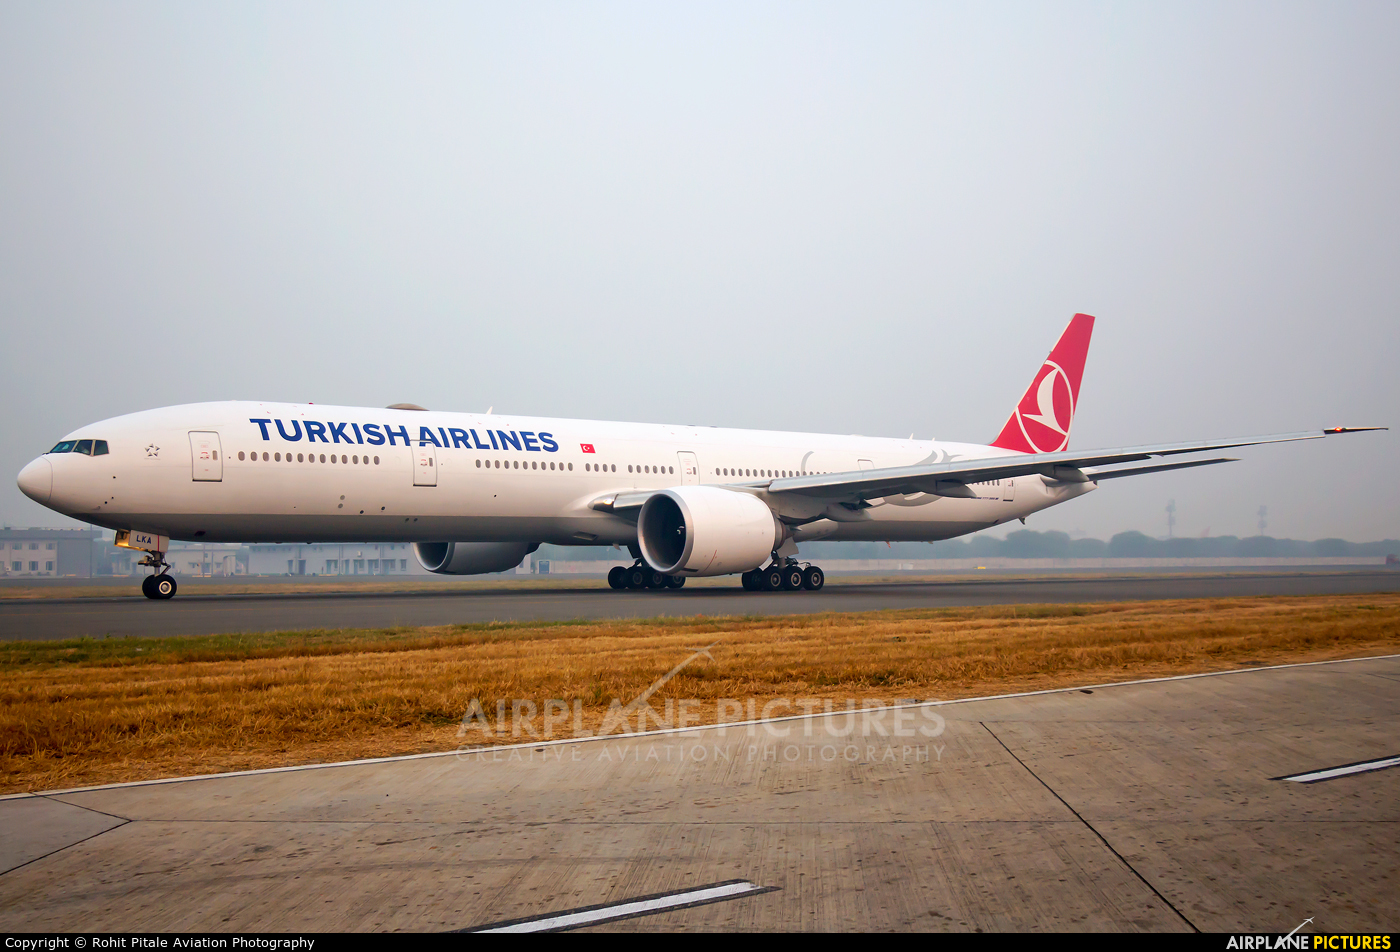 Turkish Airlines TC-LKA aircraft at Delhi - Indira Gandhi Intl